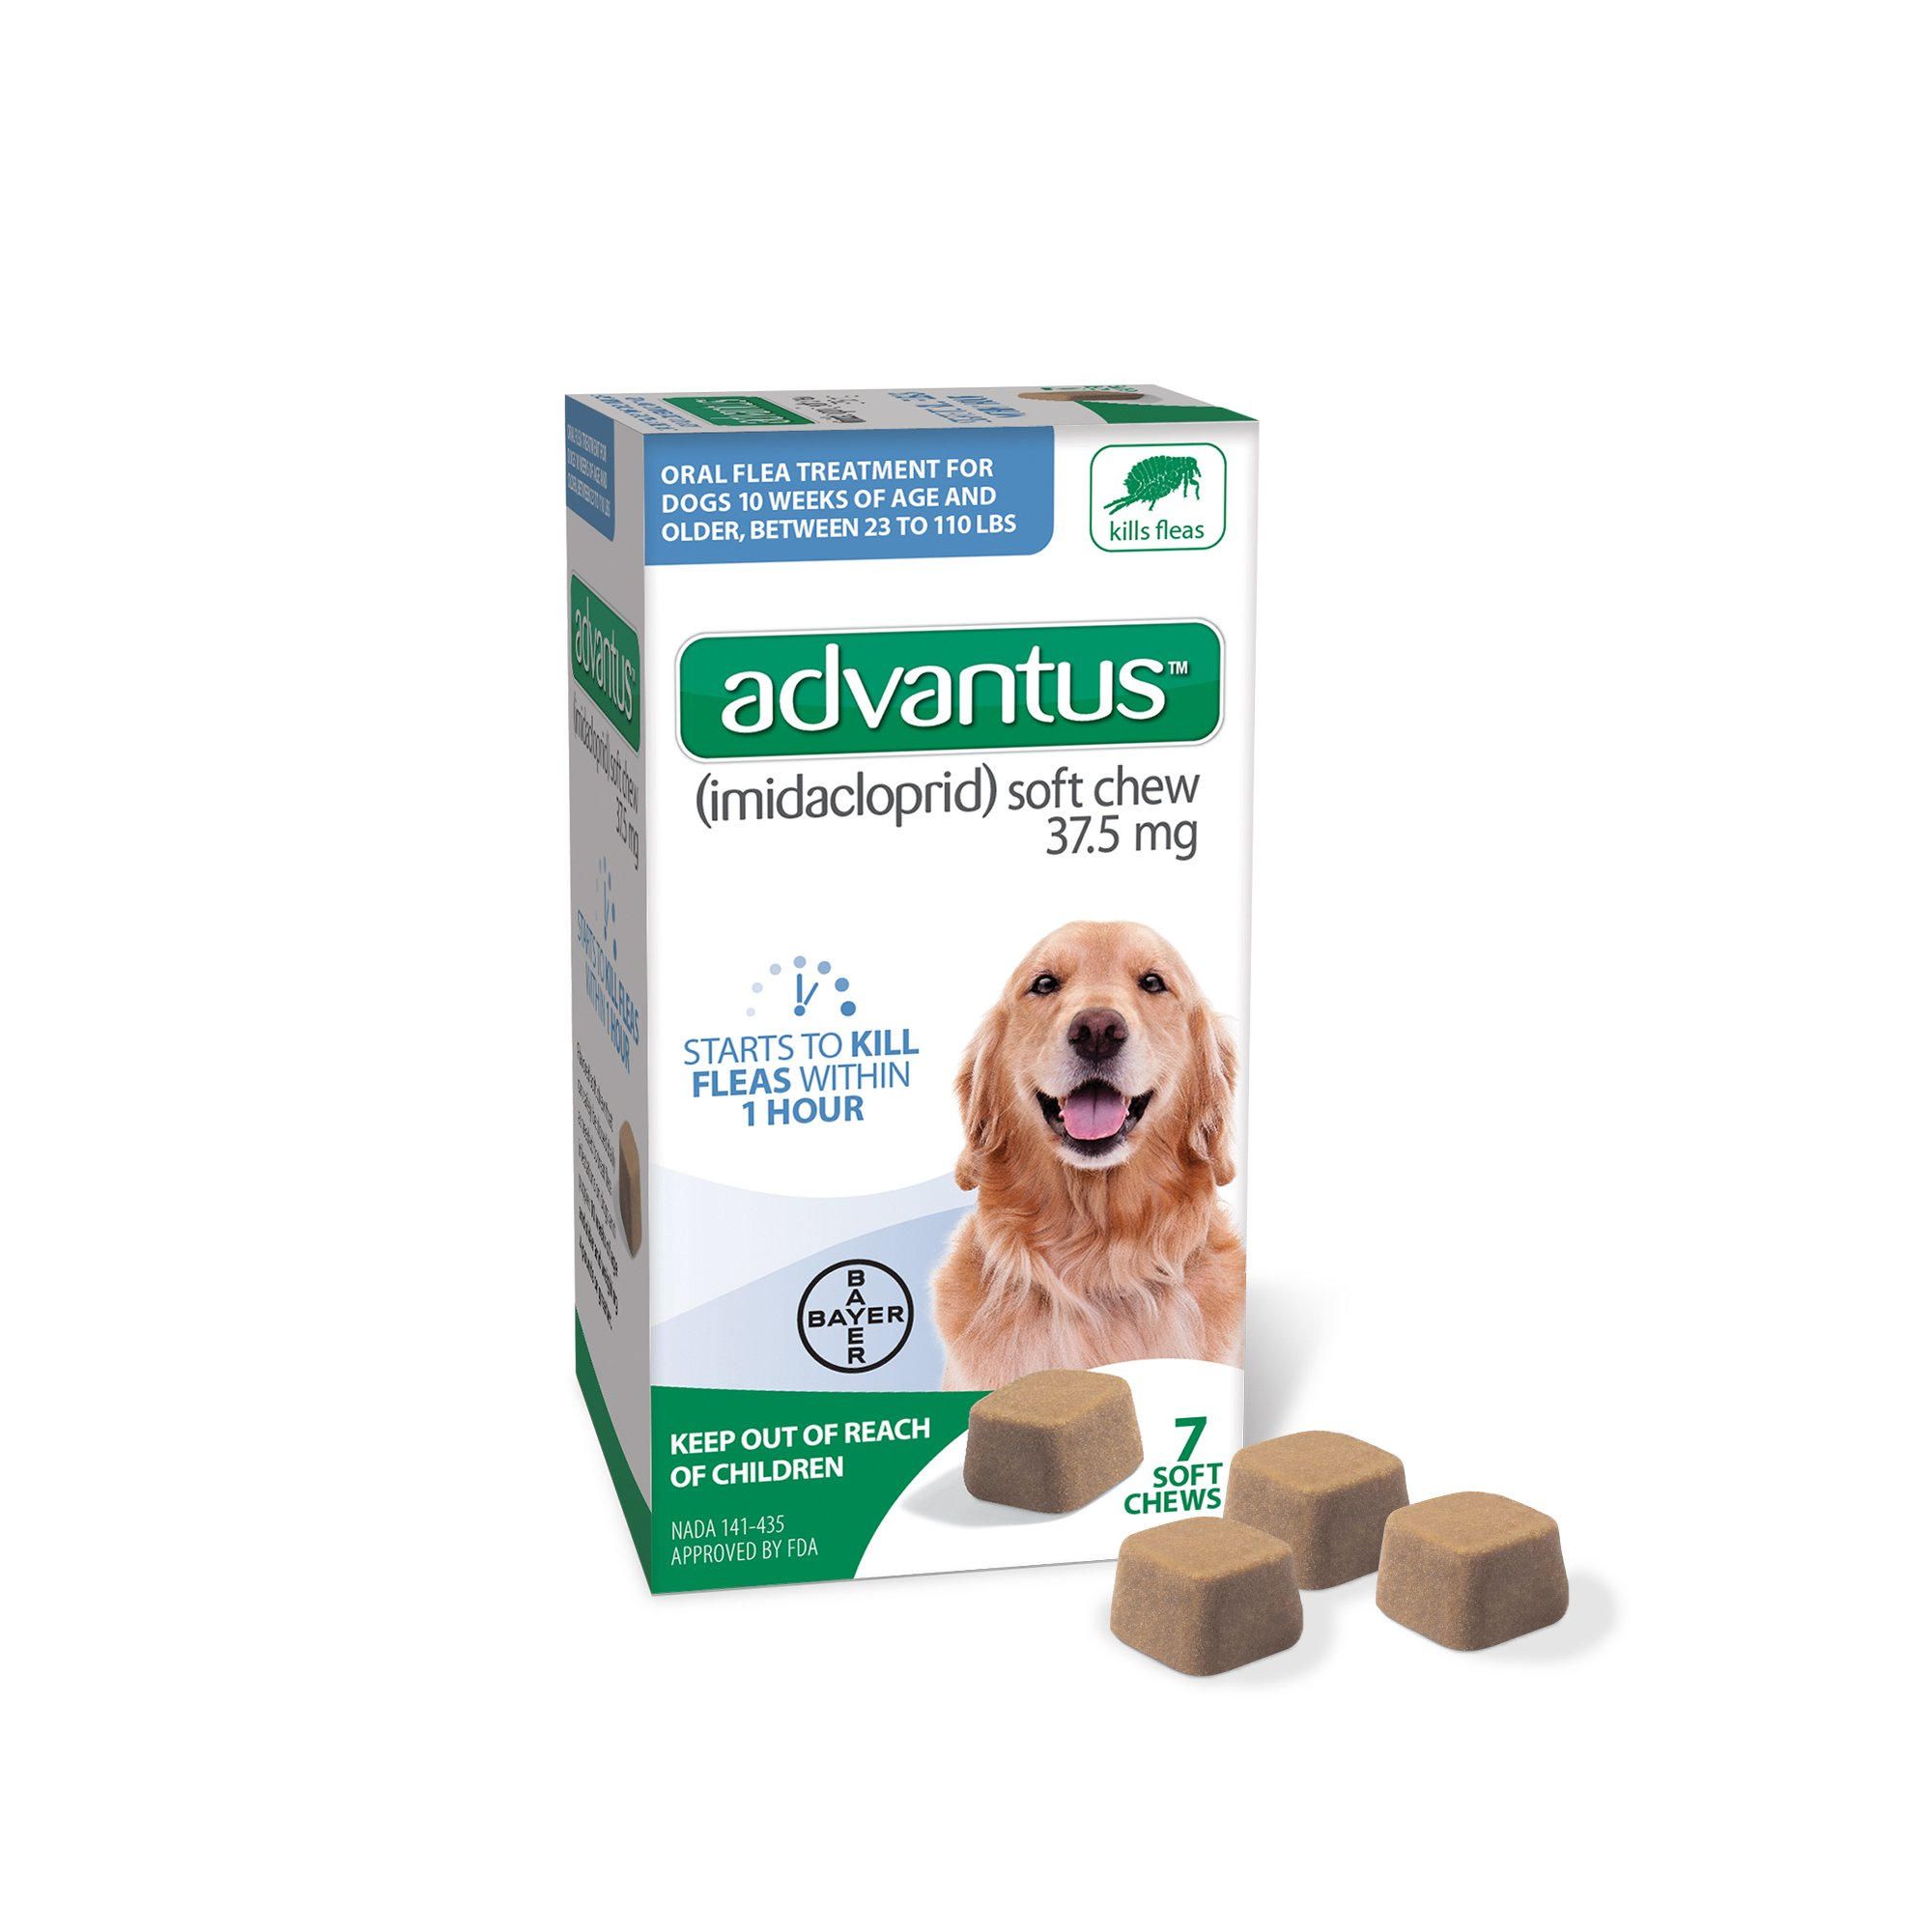 Bayer Animal Health Advantus 7 Soft Chew for Large Dog, 4 lb or Greater